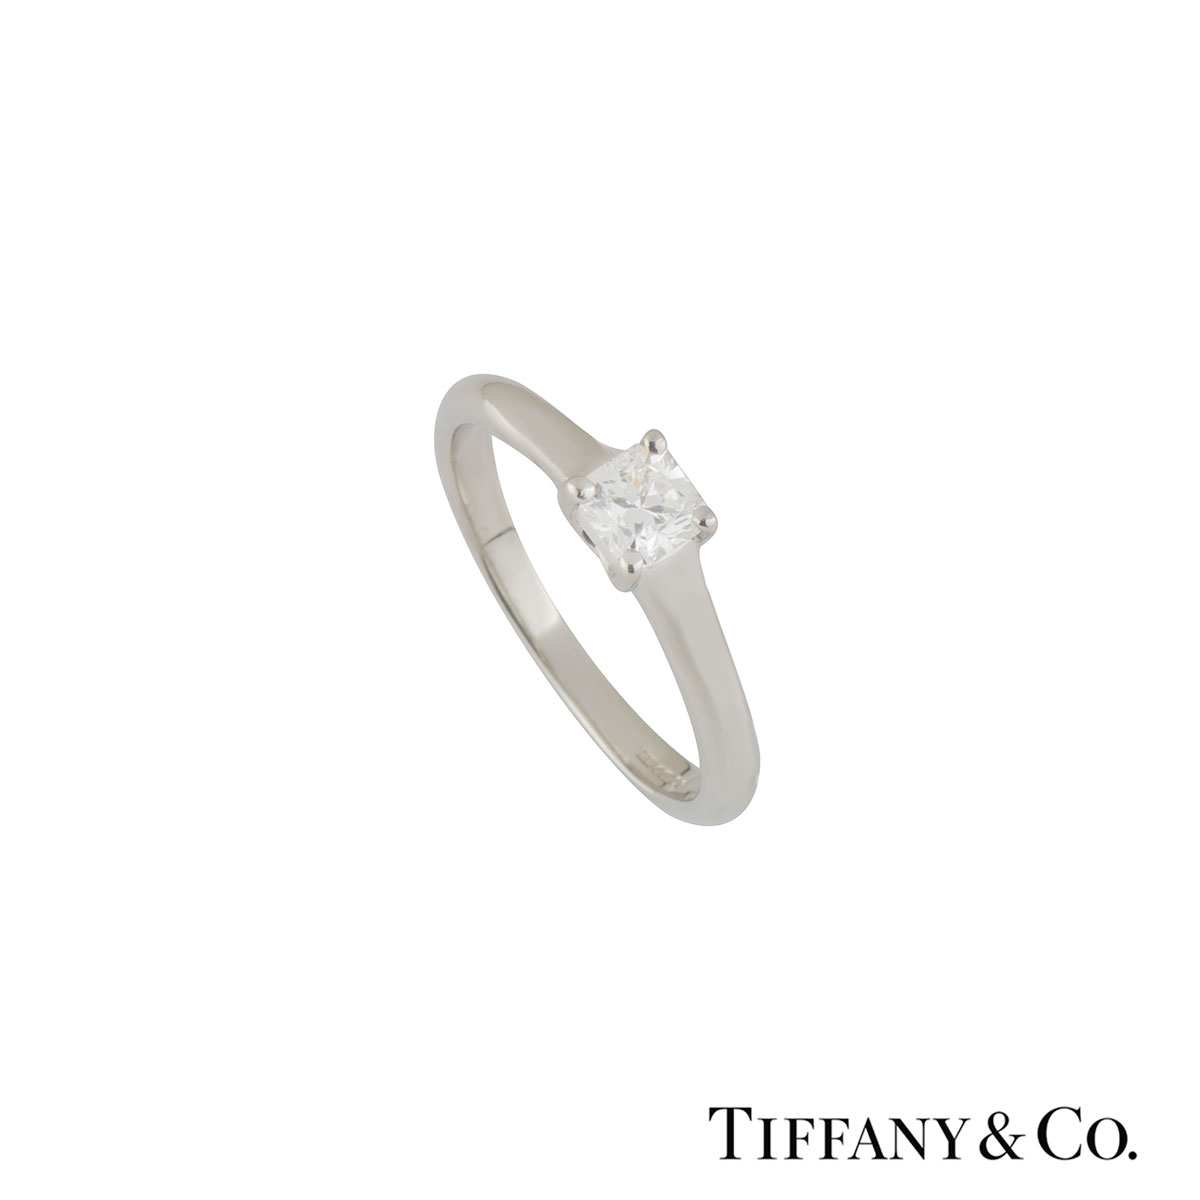 Tiffany & Co. Lucida Diamond Ring 0.35ct I/VVS1